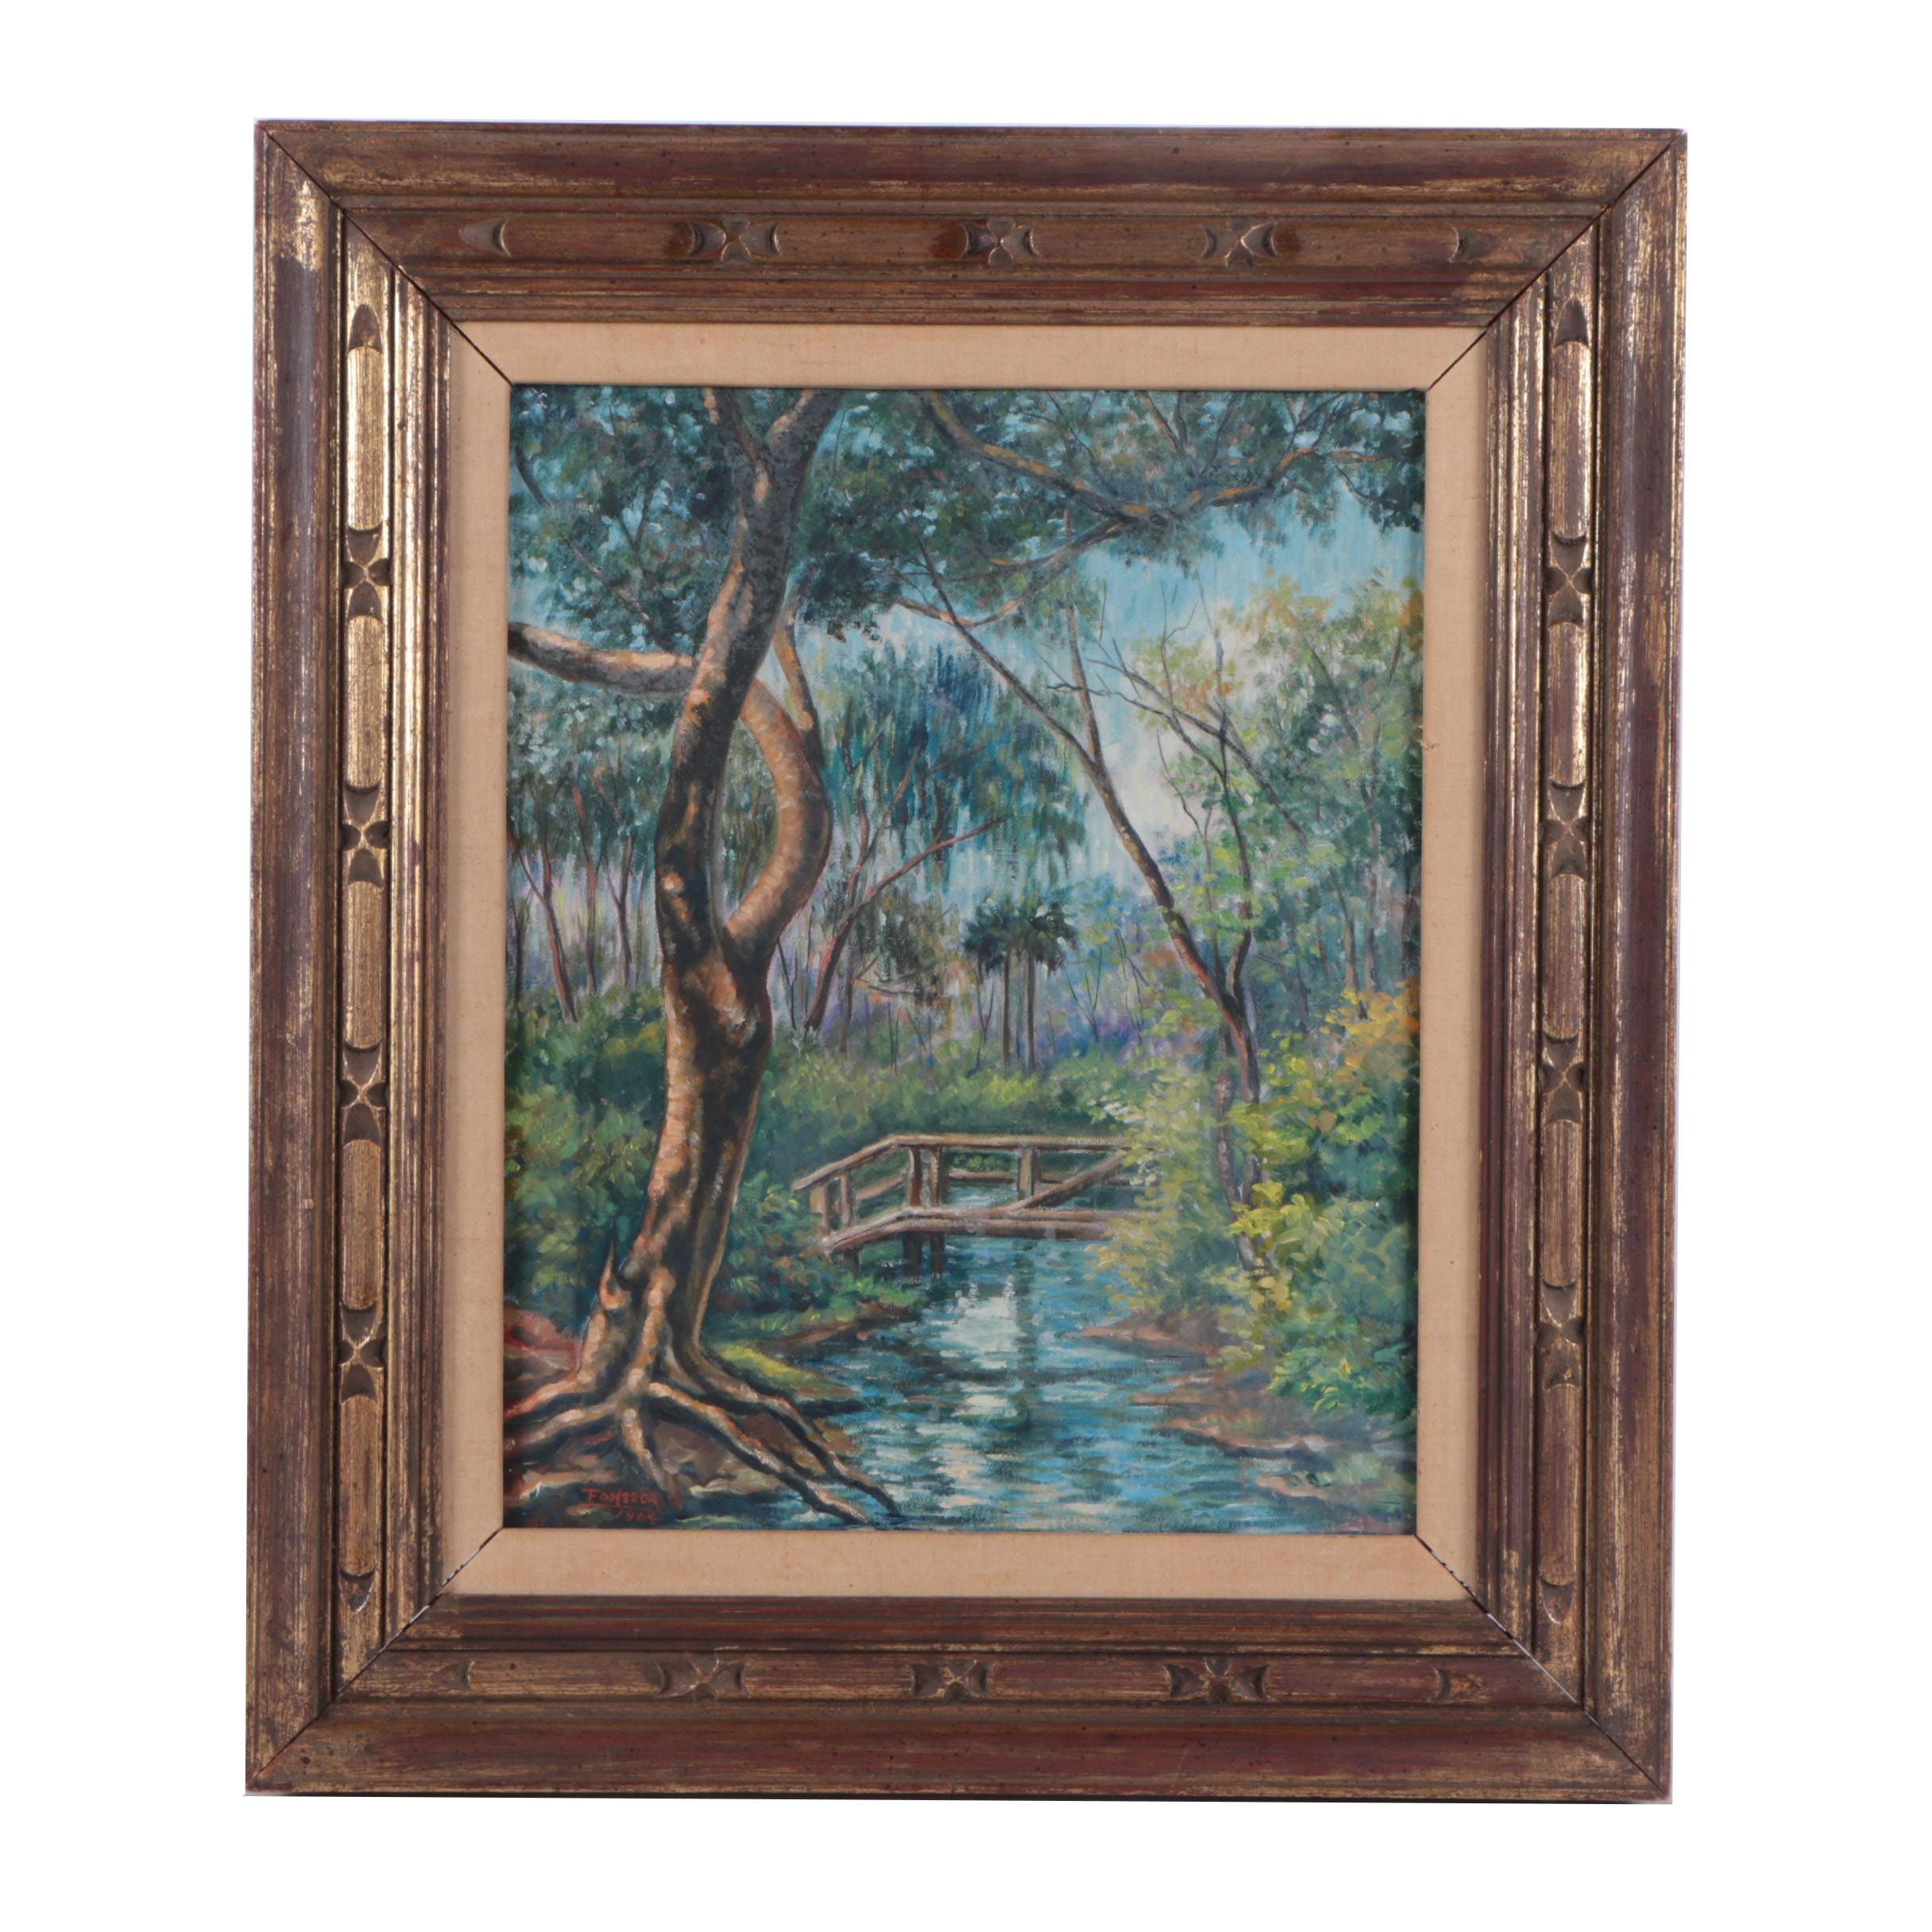 1964 Fonseca Oil Painting of Forest Landscape